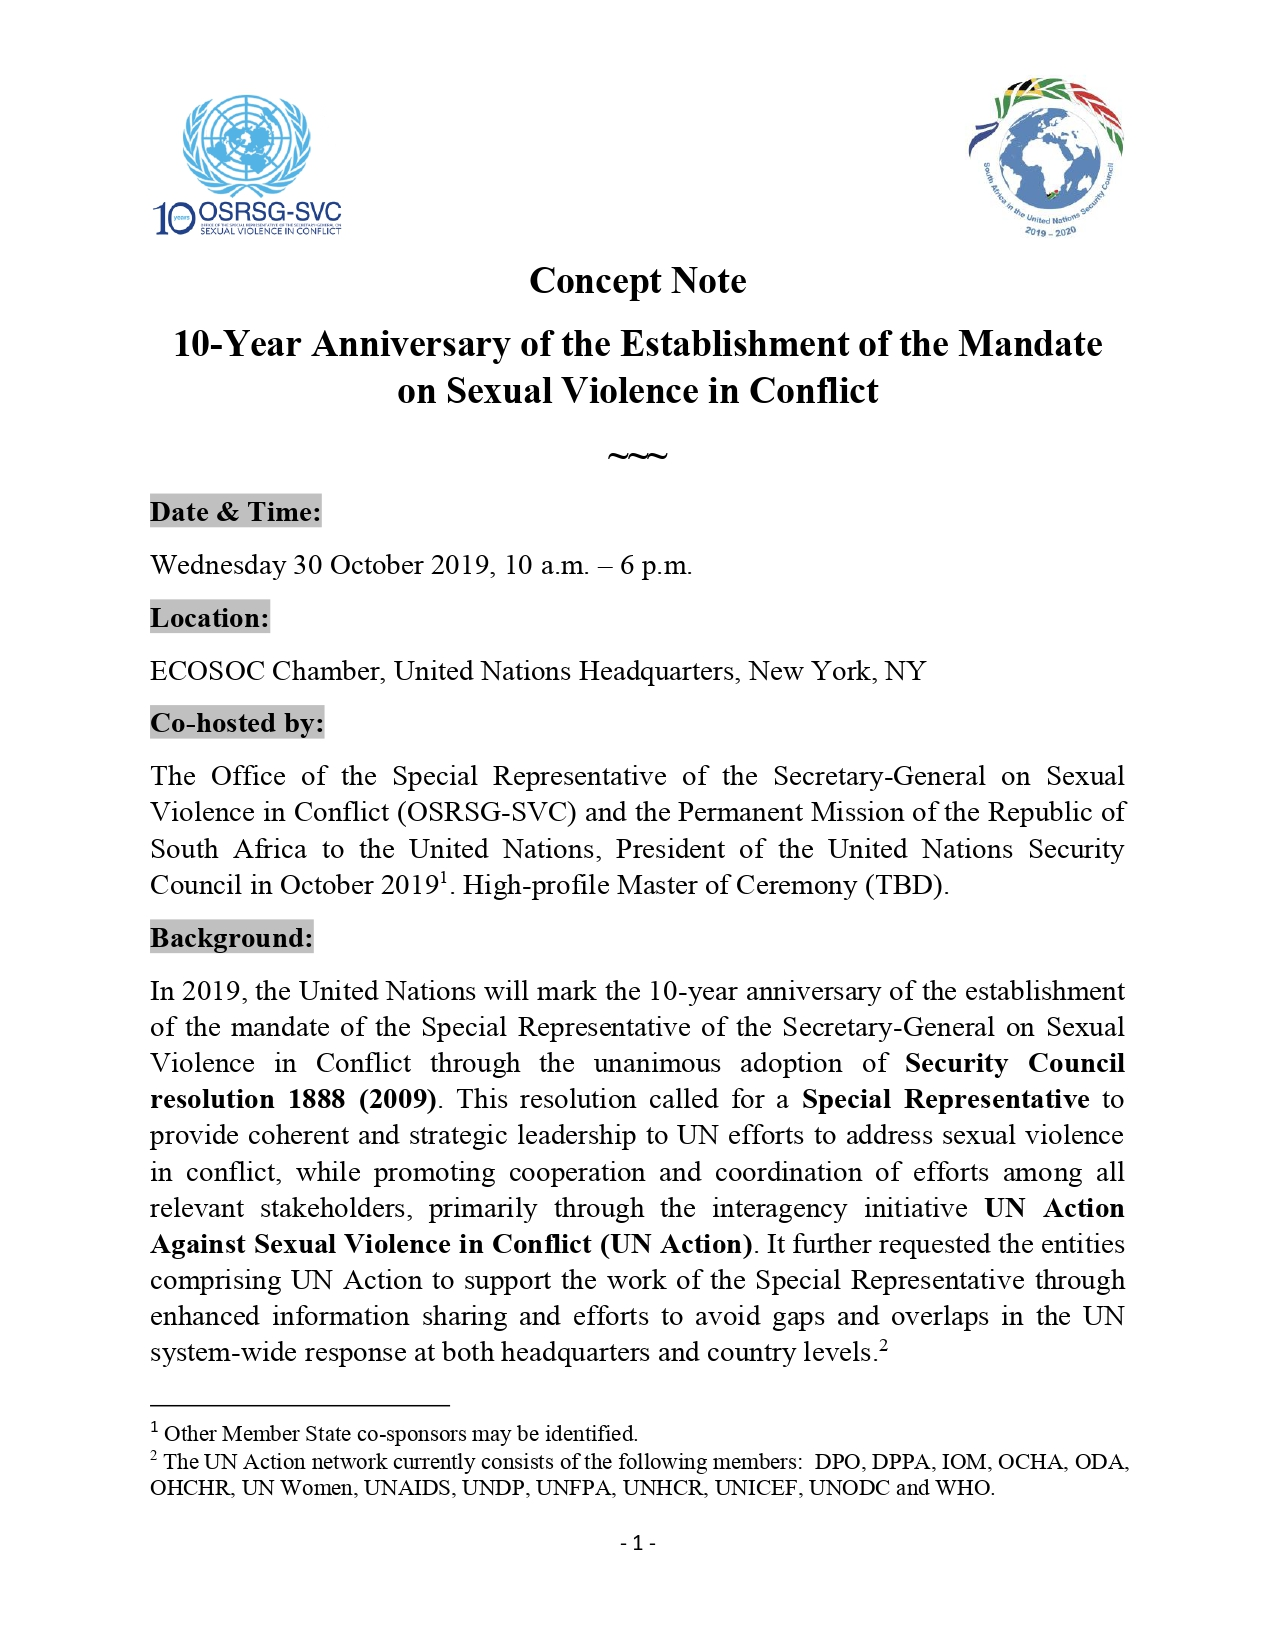 Concept Note 10-Year Anniversary of the Establishment of the Mandate on Sexual Violence in Conflict